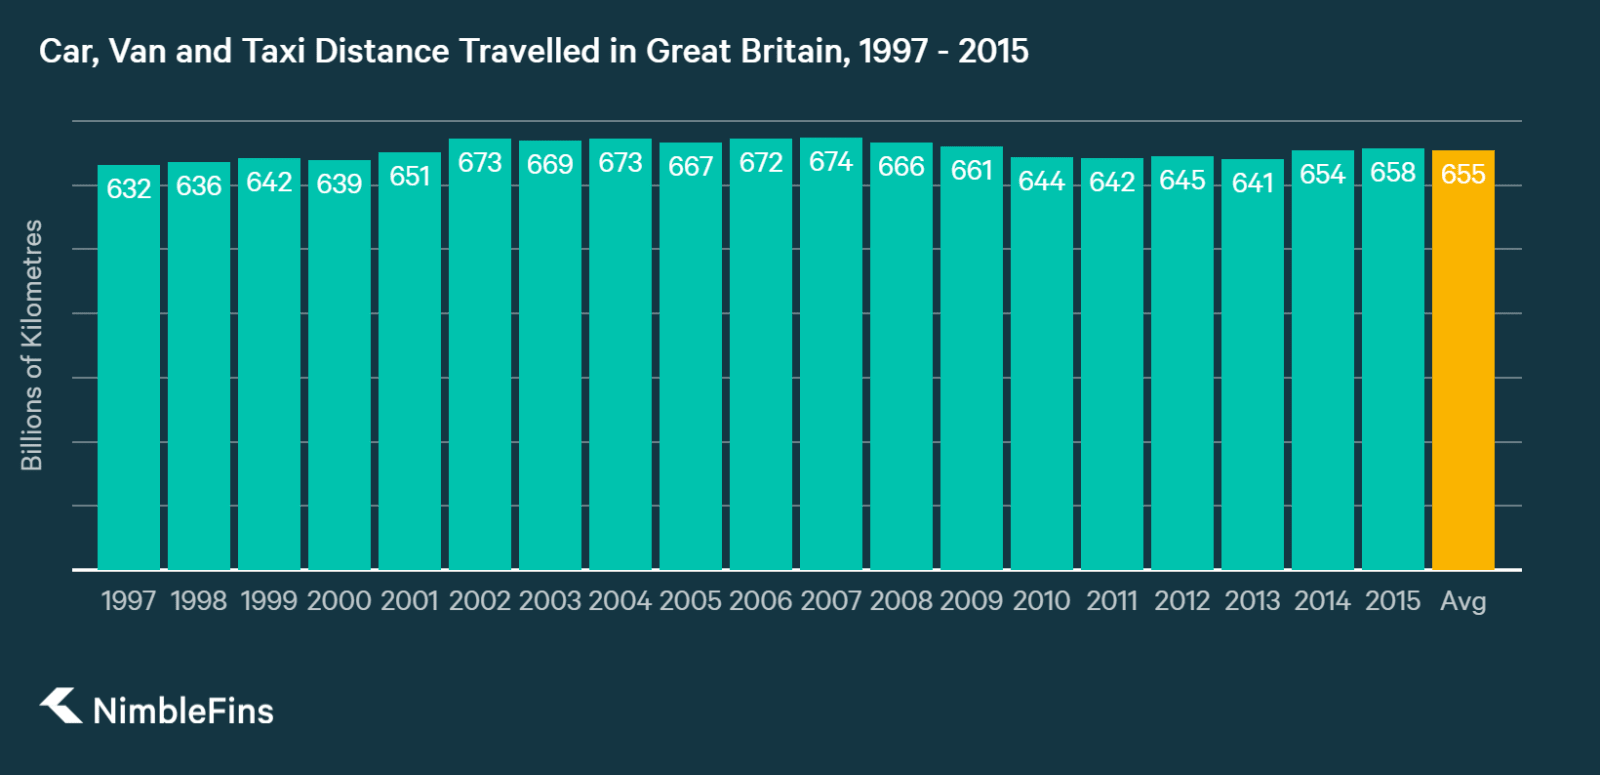 chart showing change in kilometres driven in Britain by cars, vans and taxis